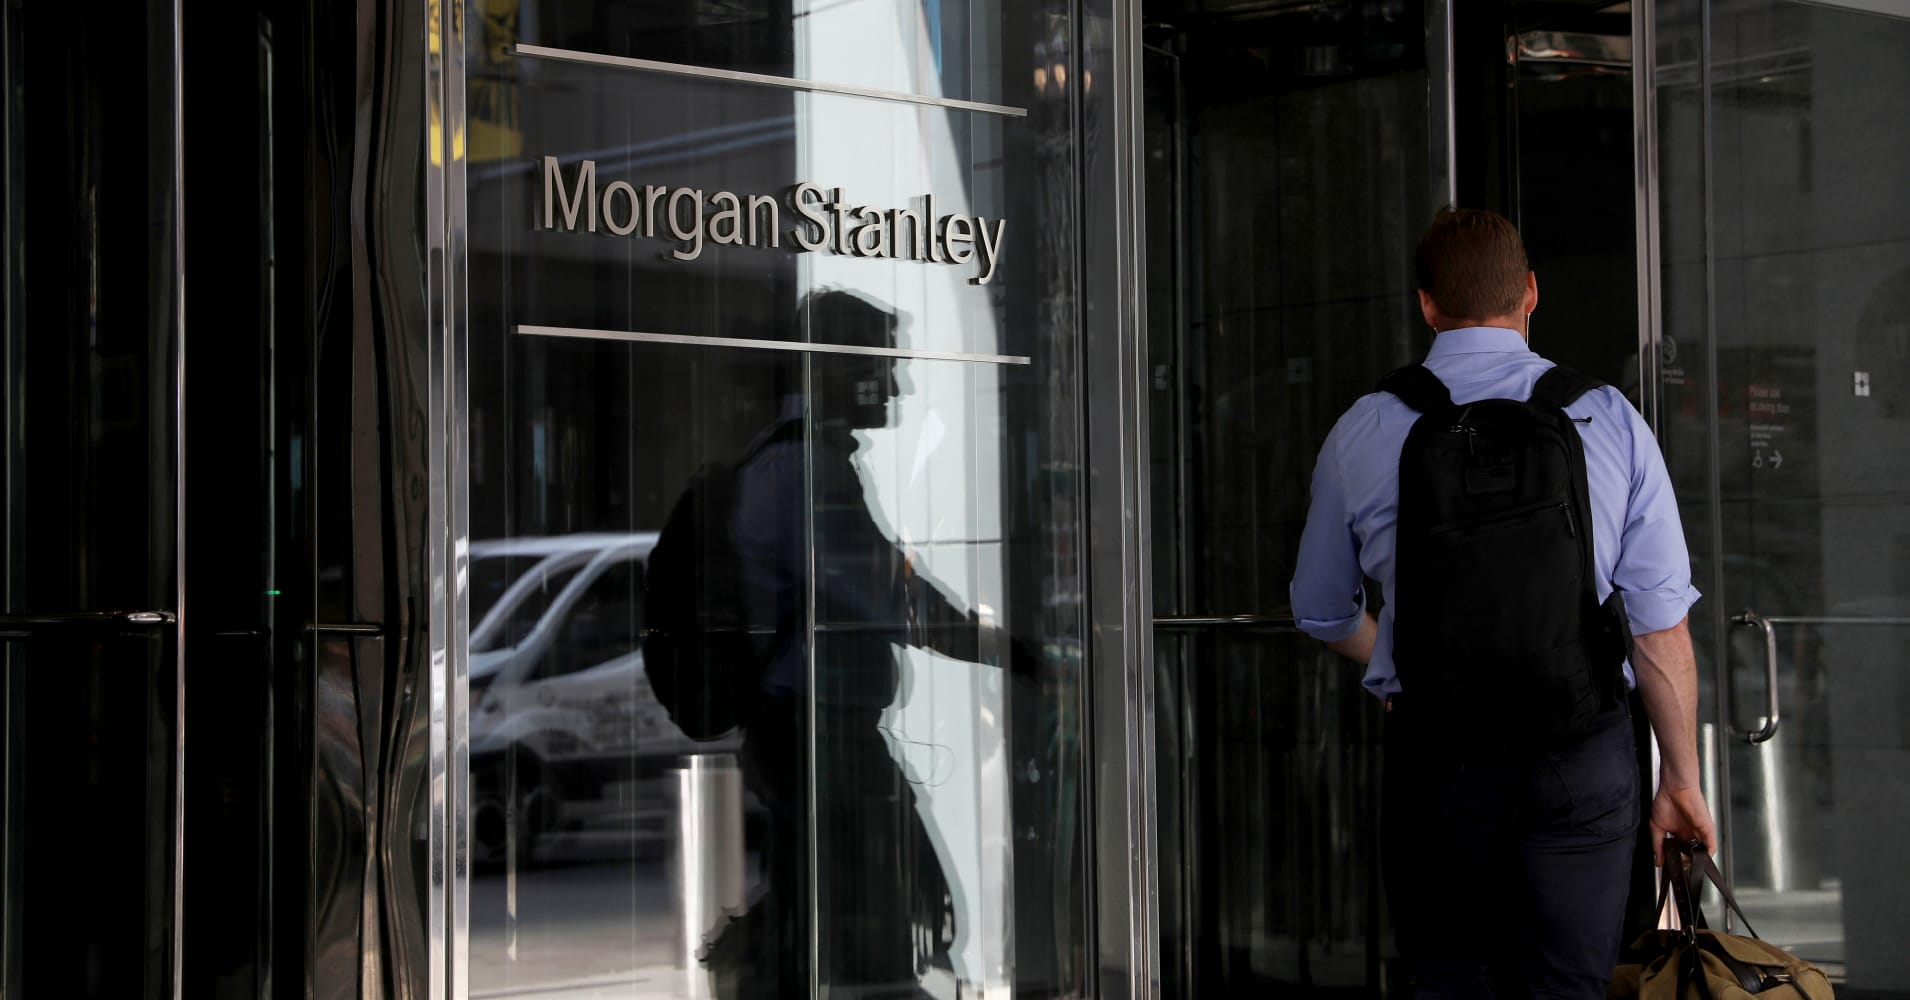 The major bank earnings reports are all in and Morgan Stanley was the biggest loser